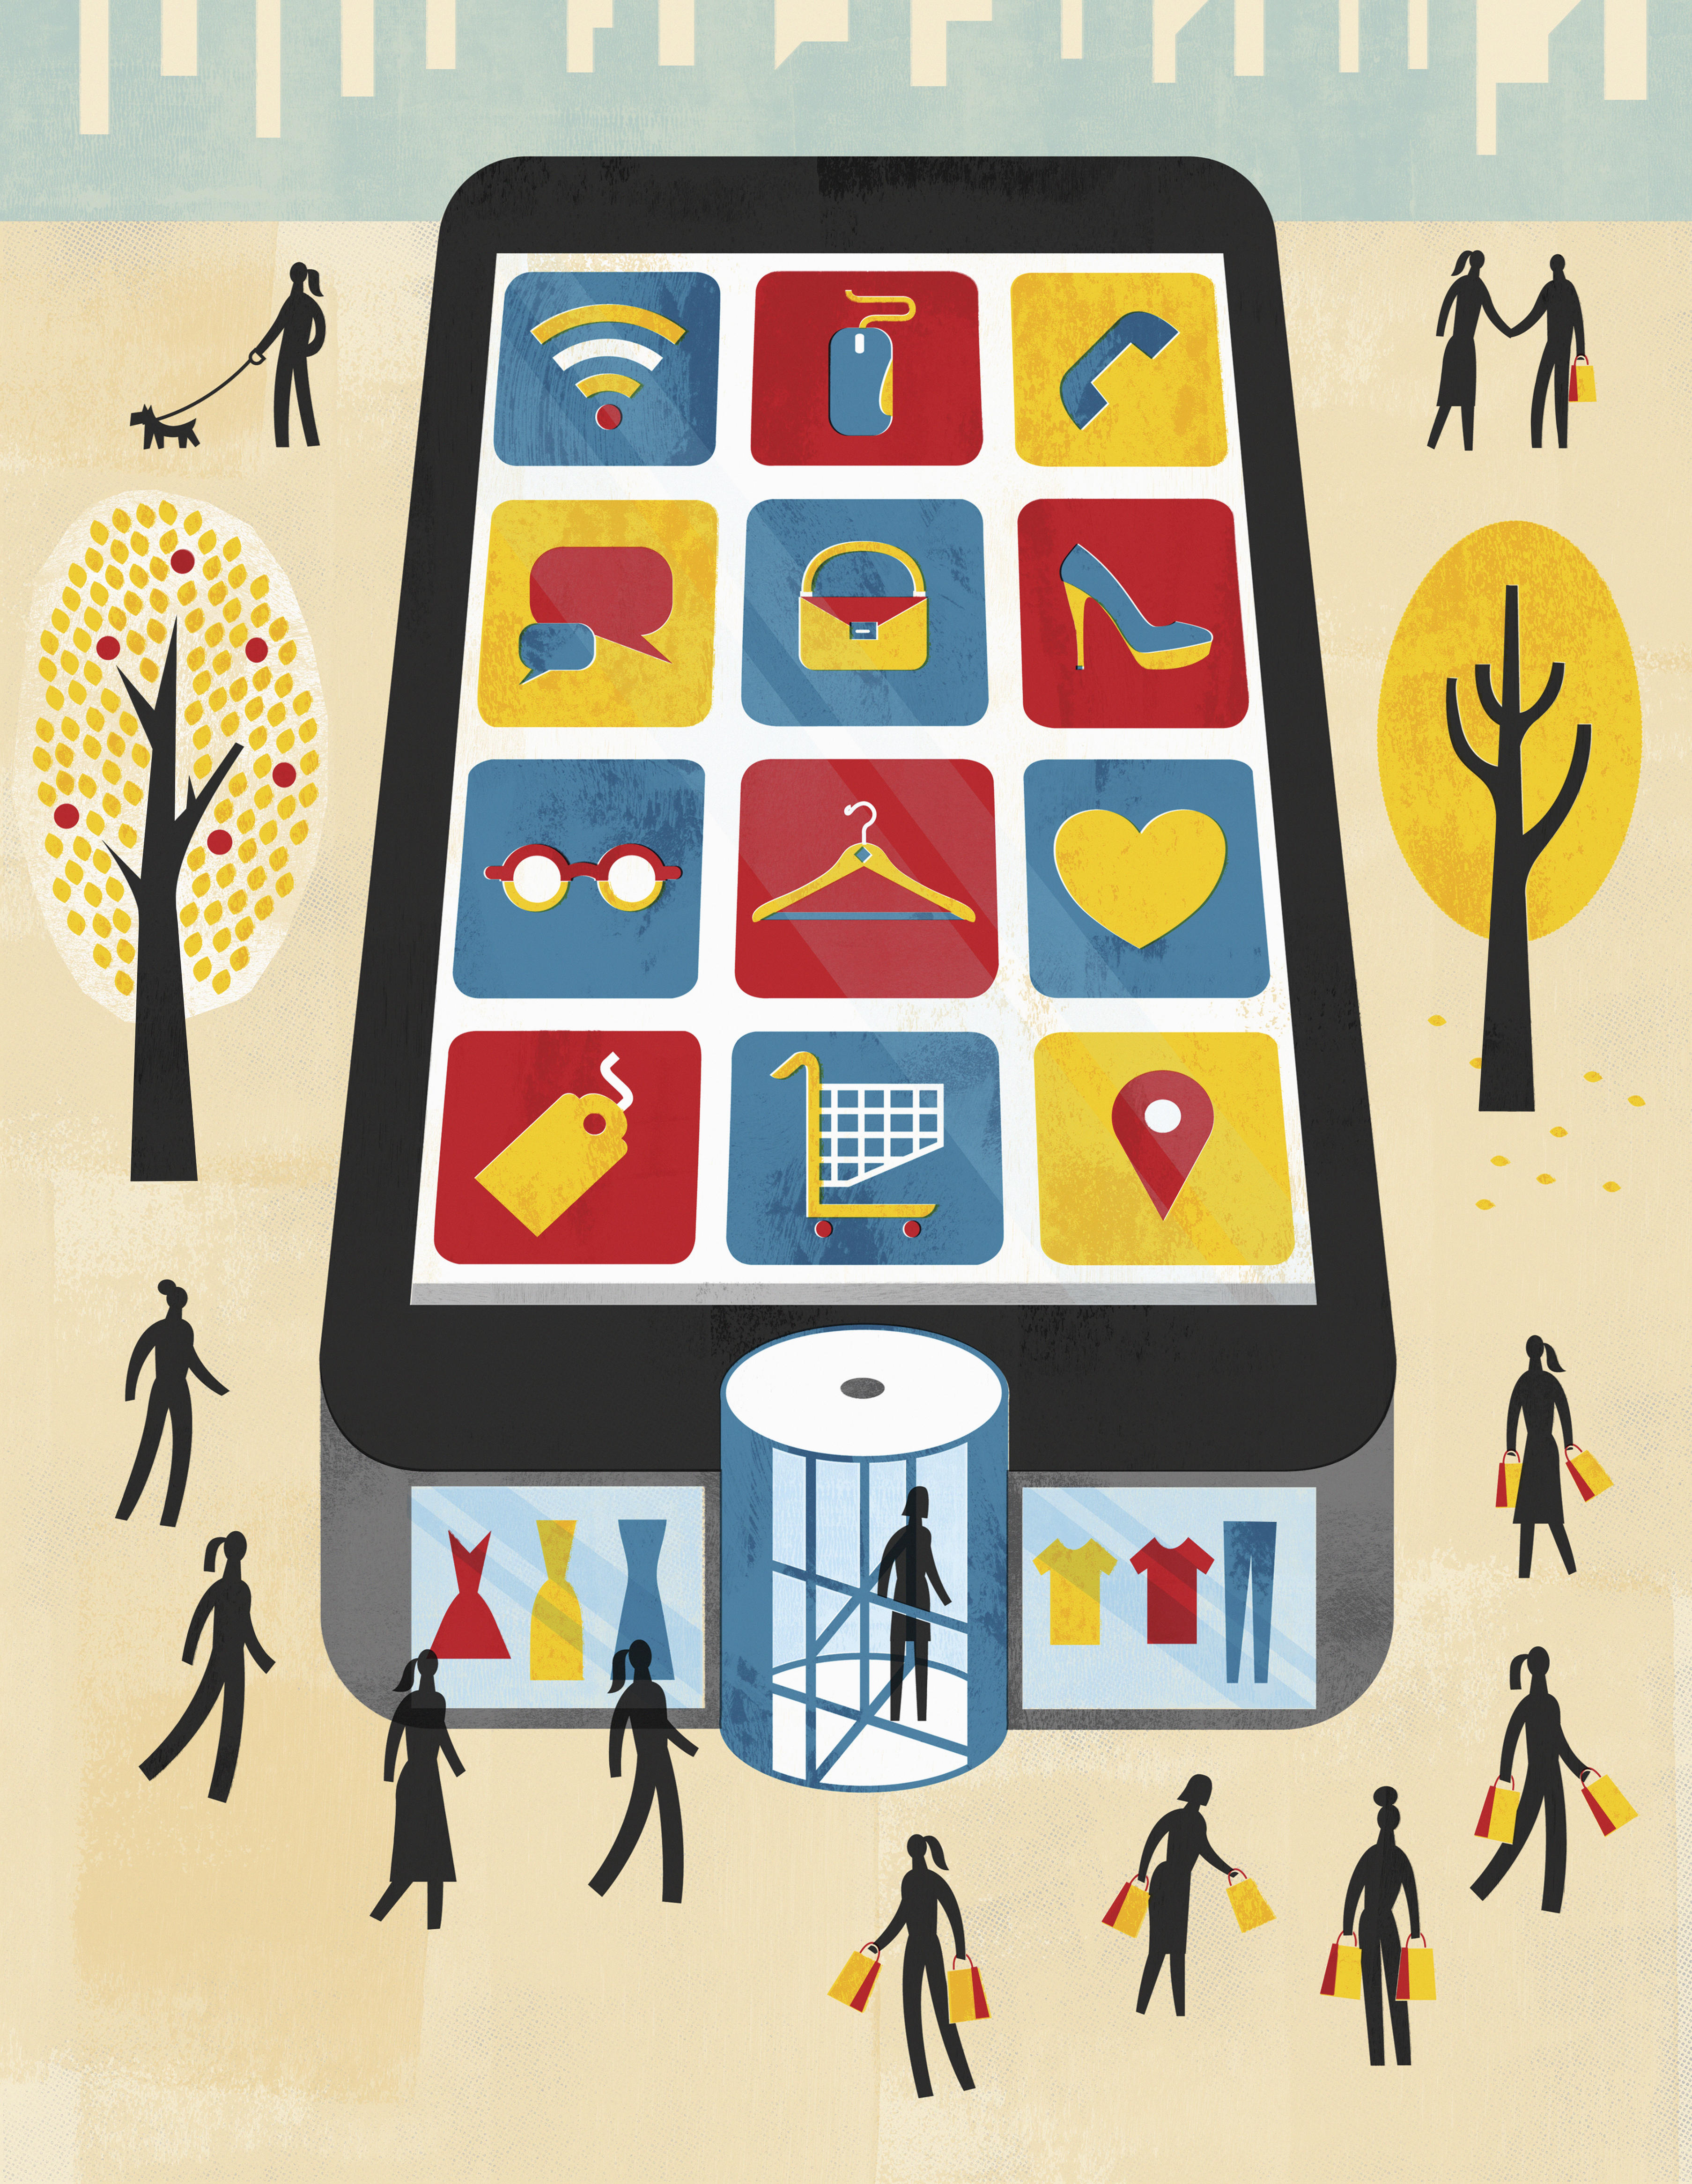 Illustration of smartphone as department store for internet shopping and mobile apps